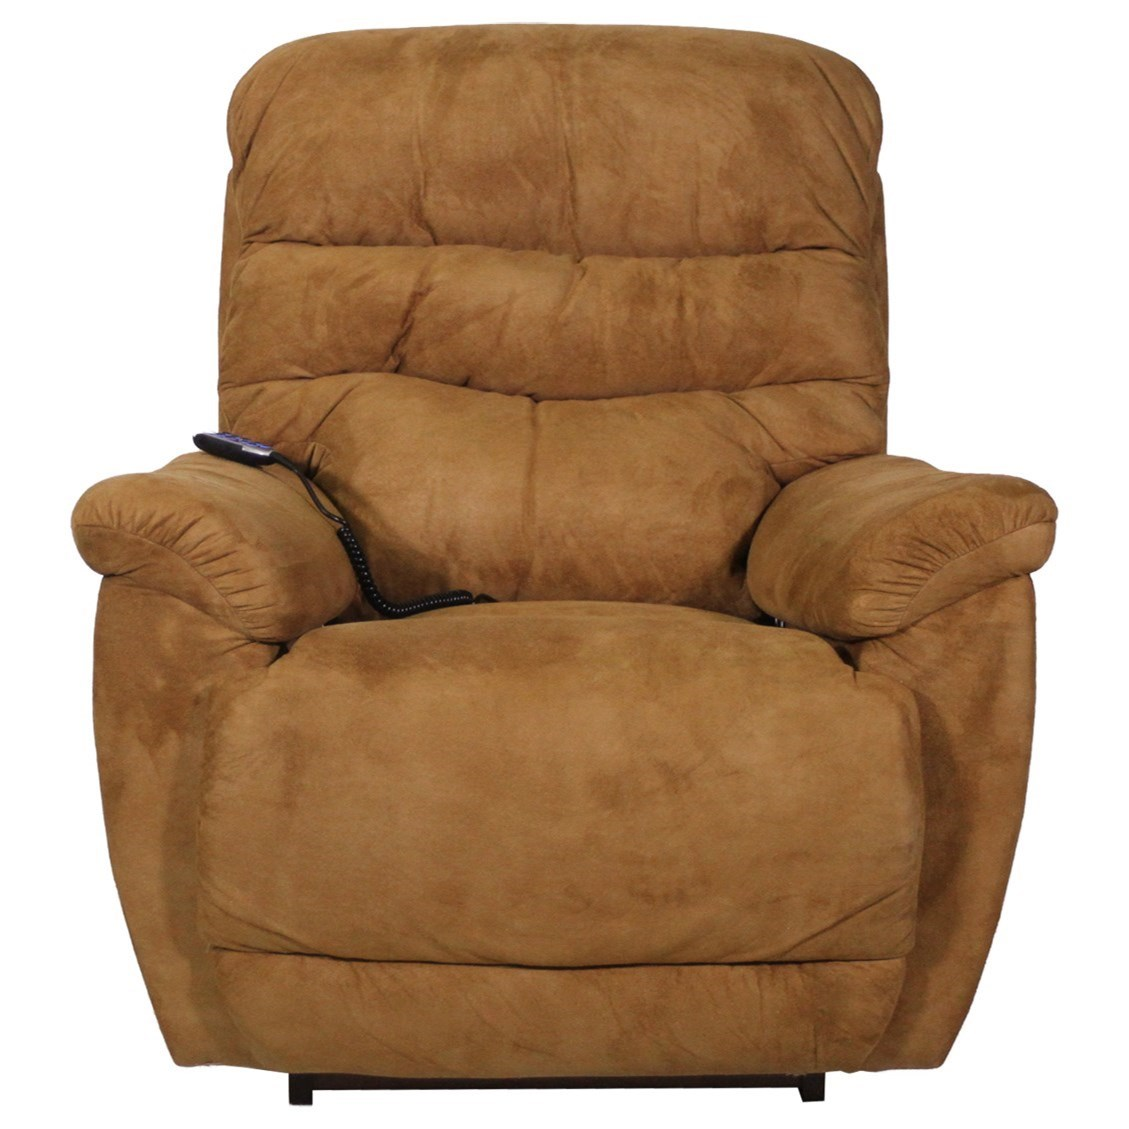 La-Z-Boy   Joshua Power XR Rocker Recliner - Item Number: 1HR502C948476